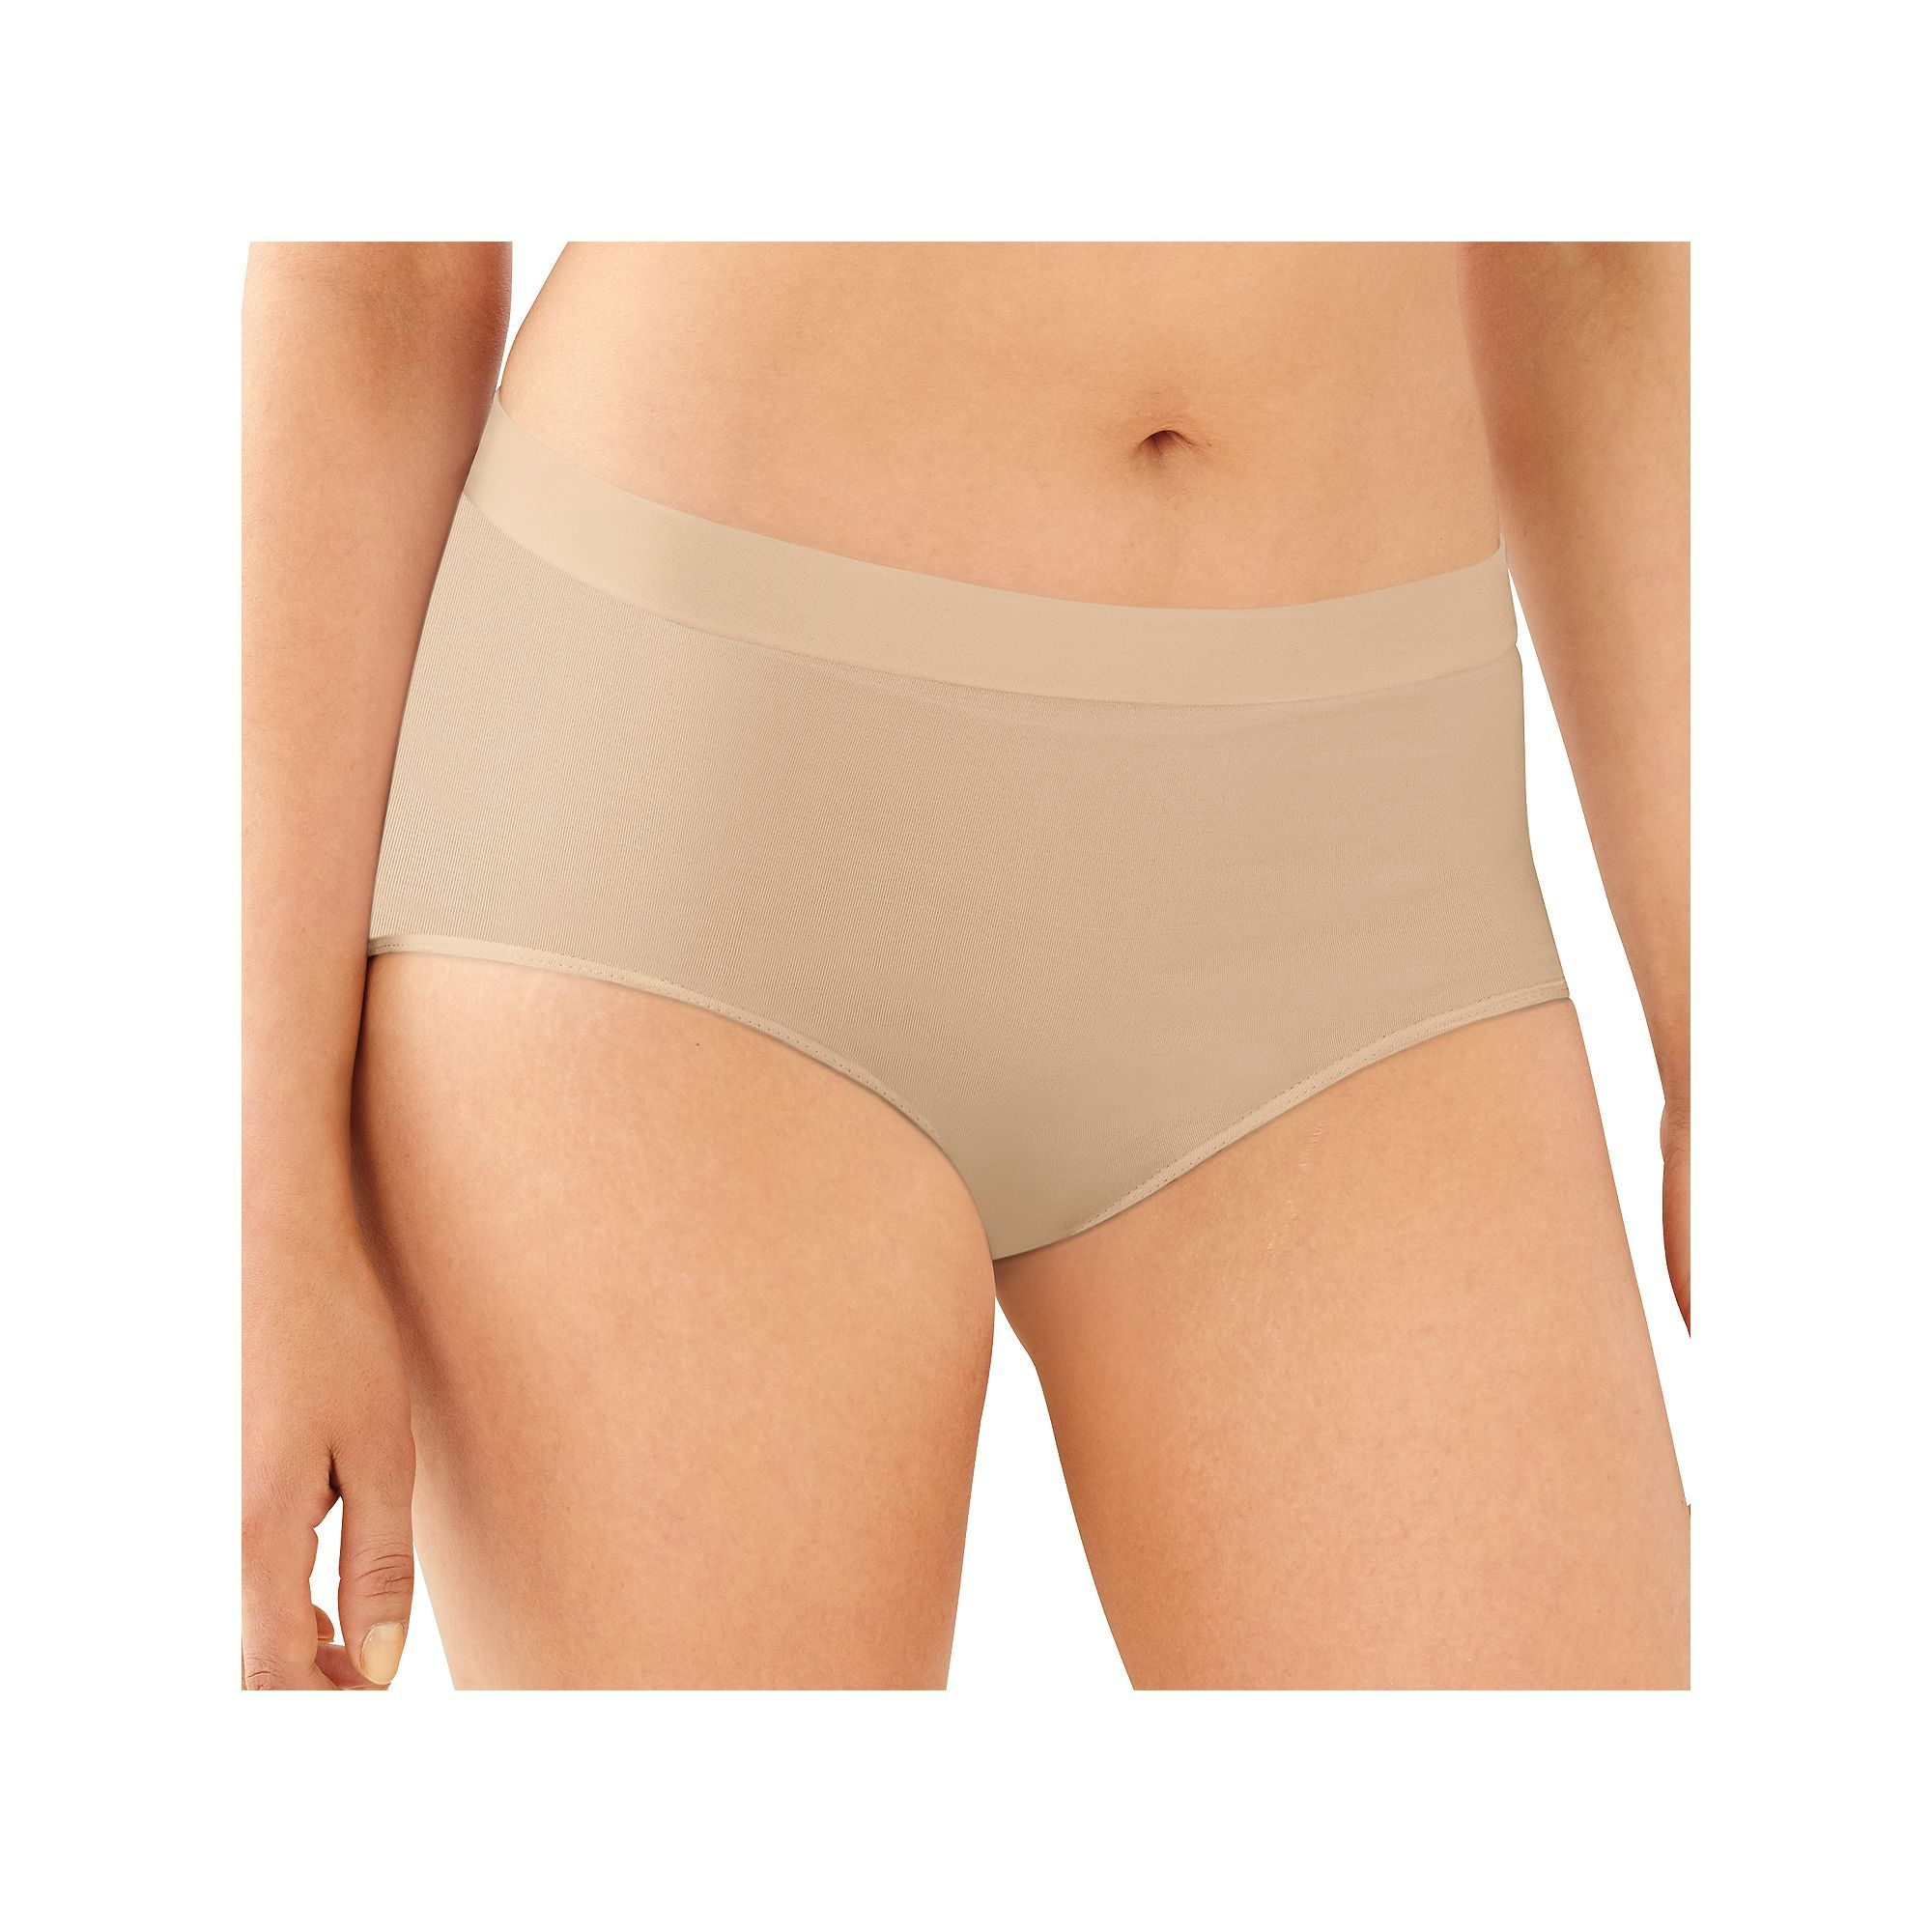 255e51a2b98 Bali One Smooth U All-Over Smoothing Brief 2361 - Women s